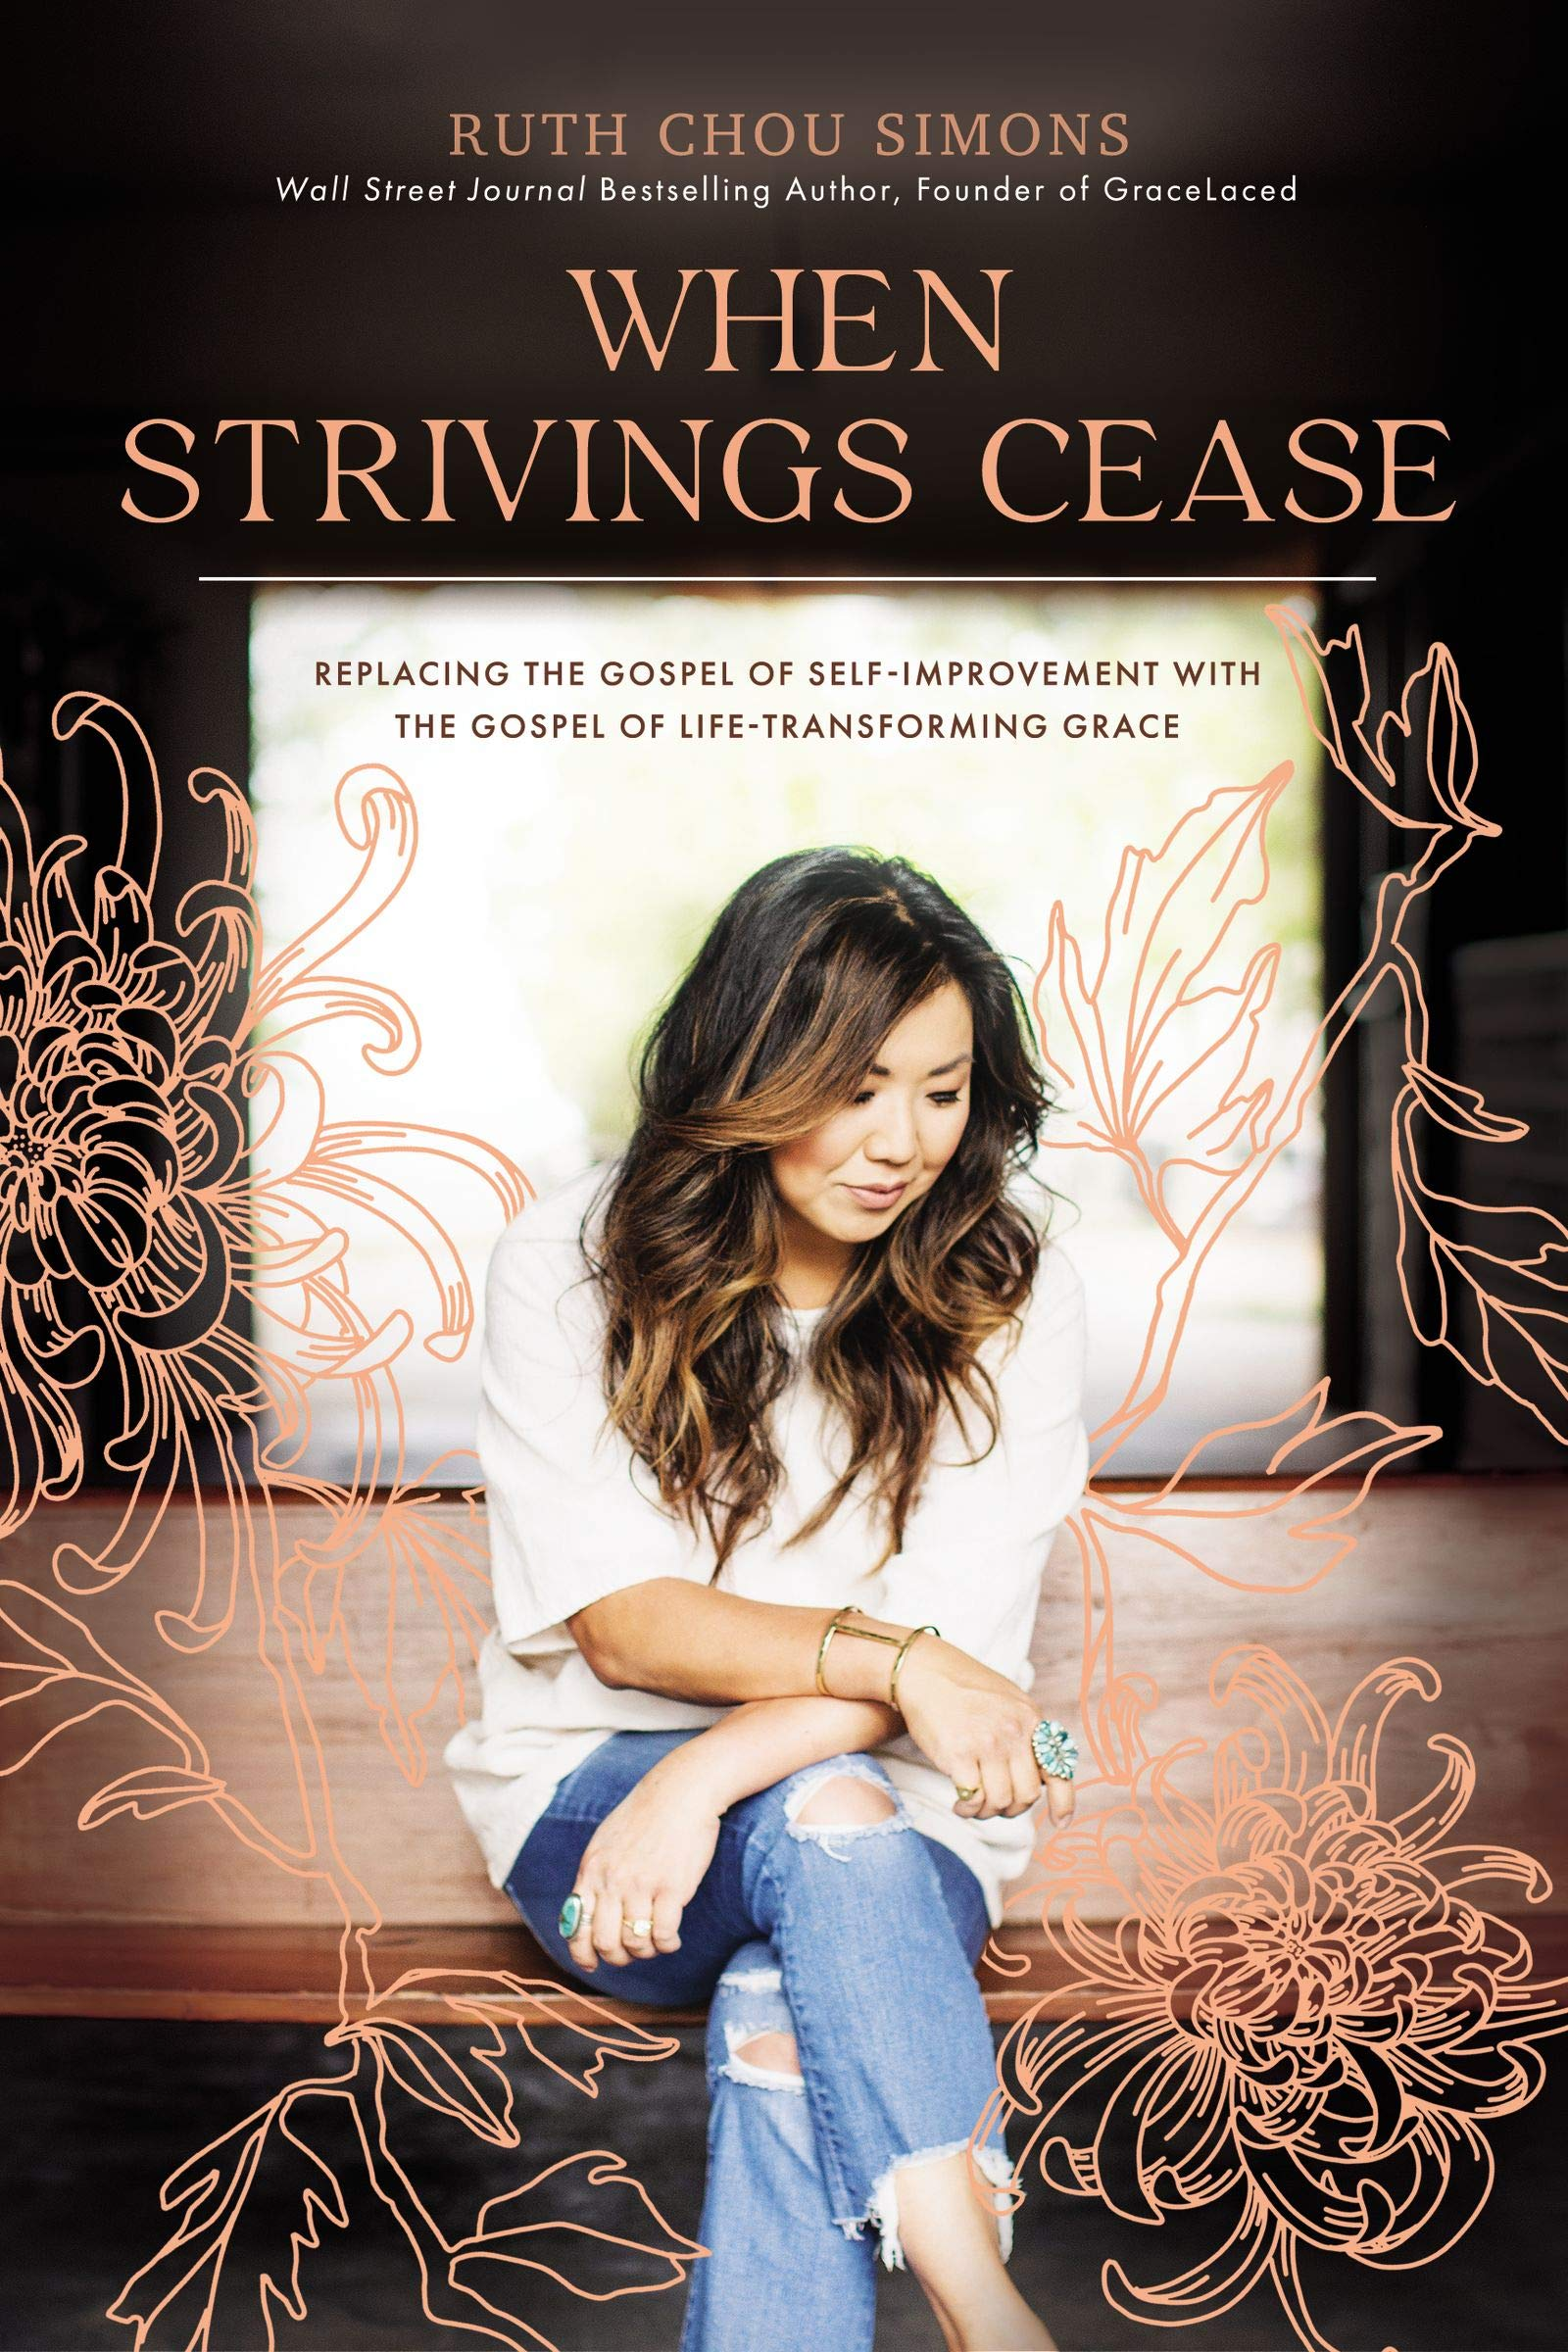 When Strivings Cease: Replacing the Gospel of Self-Improvement with the Gospel of Life-Transforming Grace